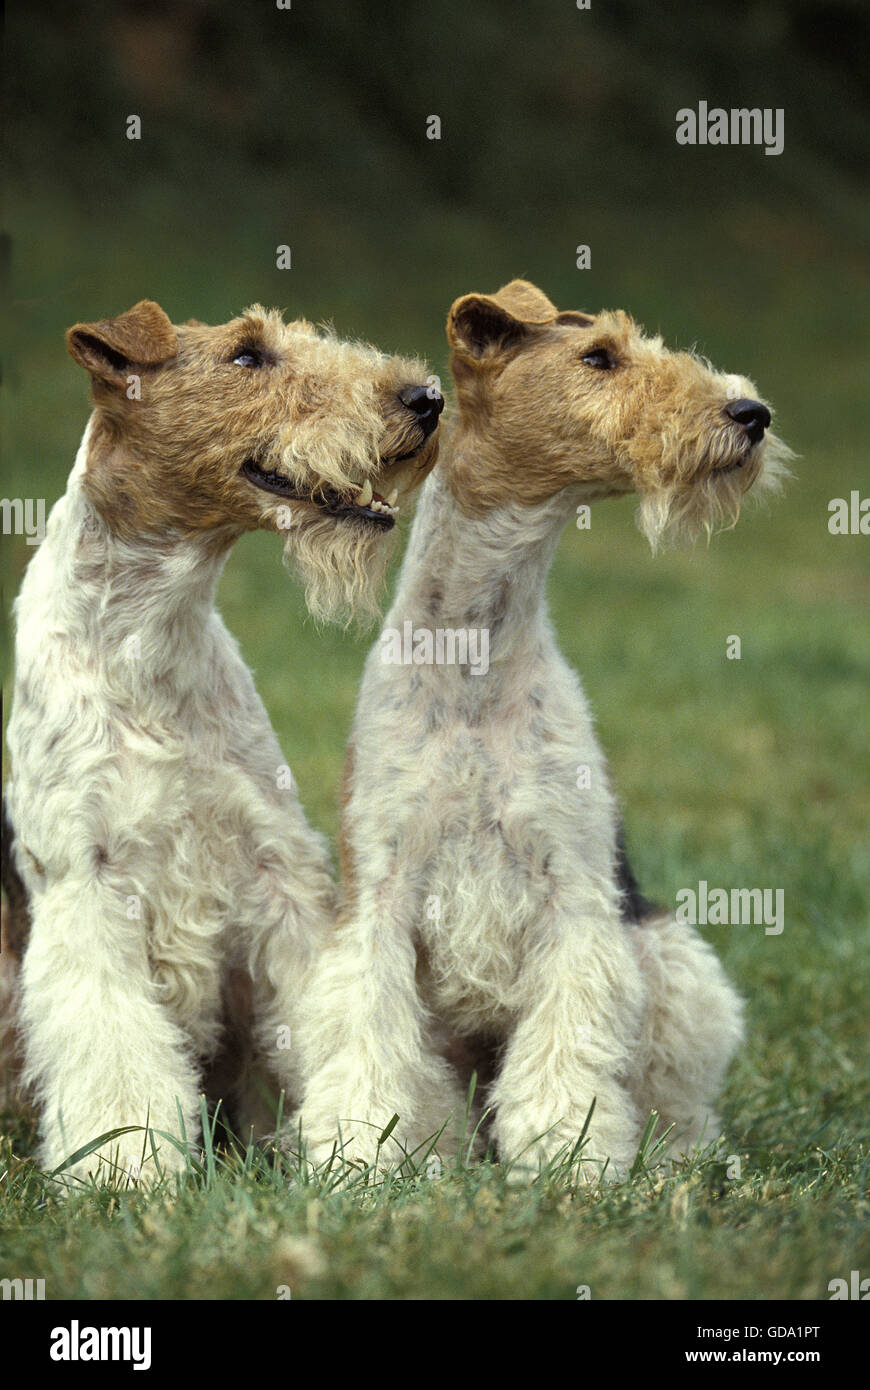 Wire-Haired Fox Terrier Dog - Stock Image